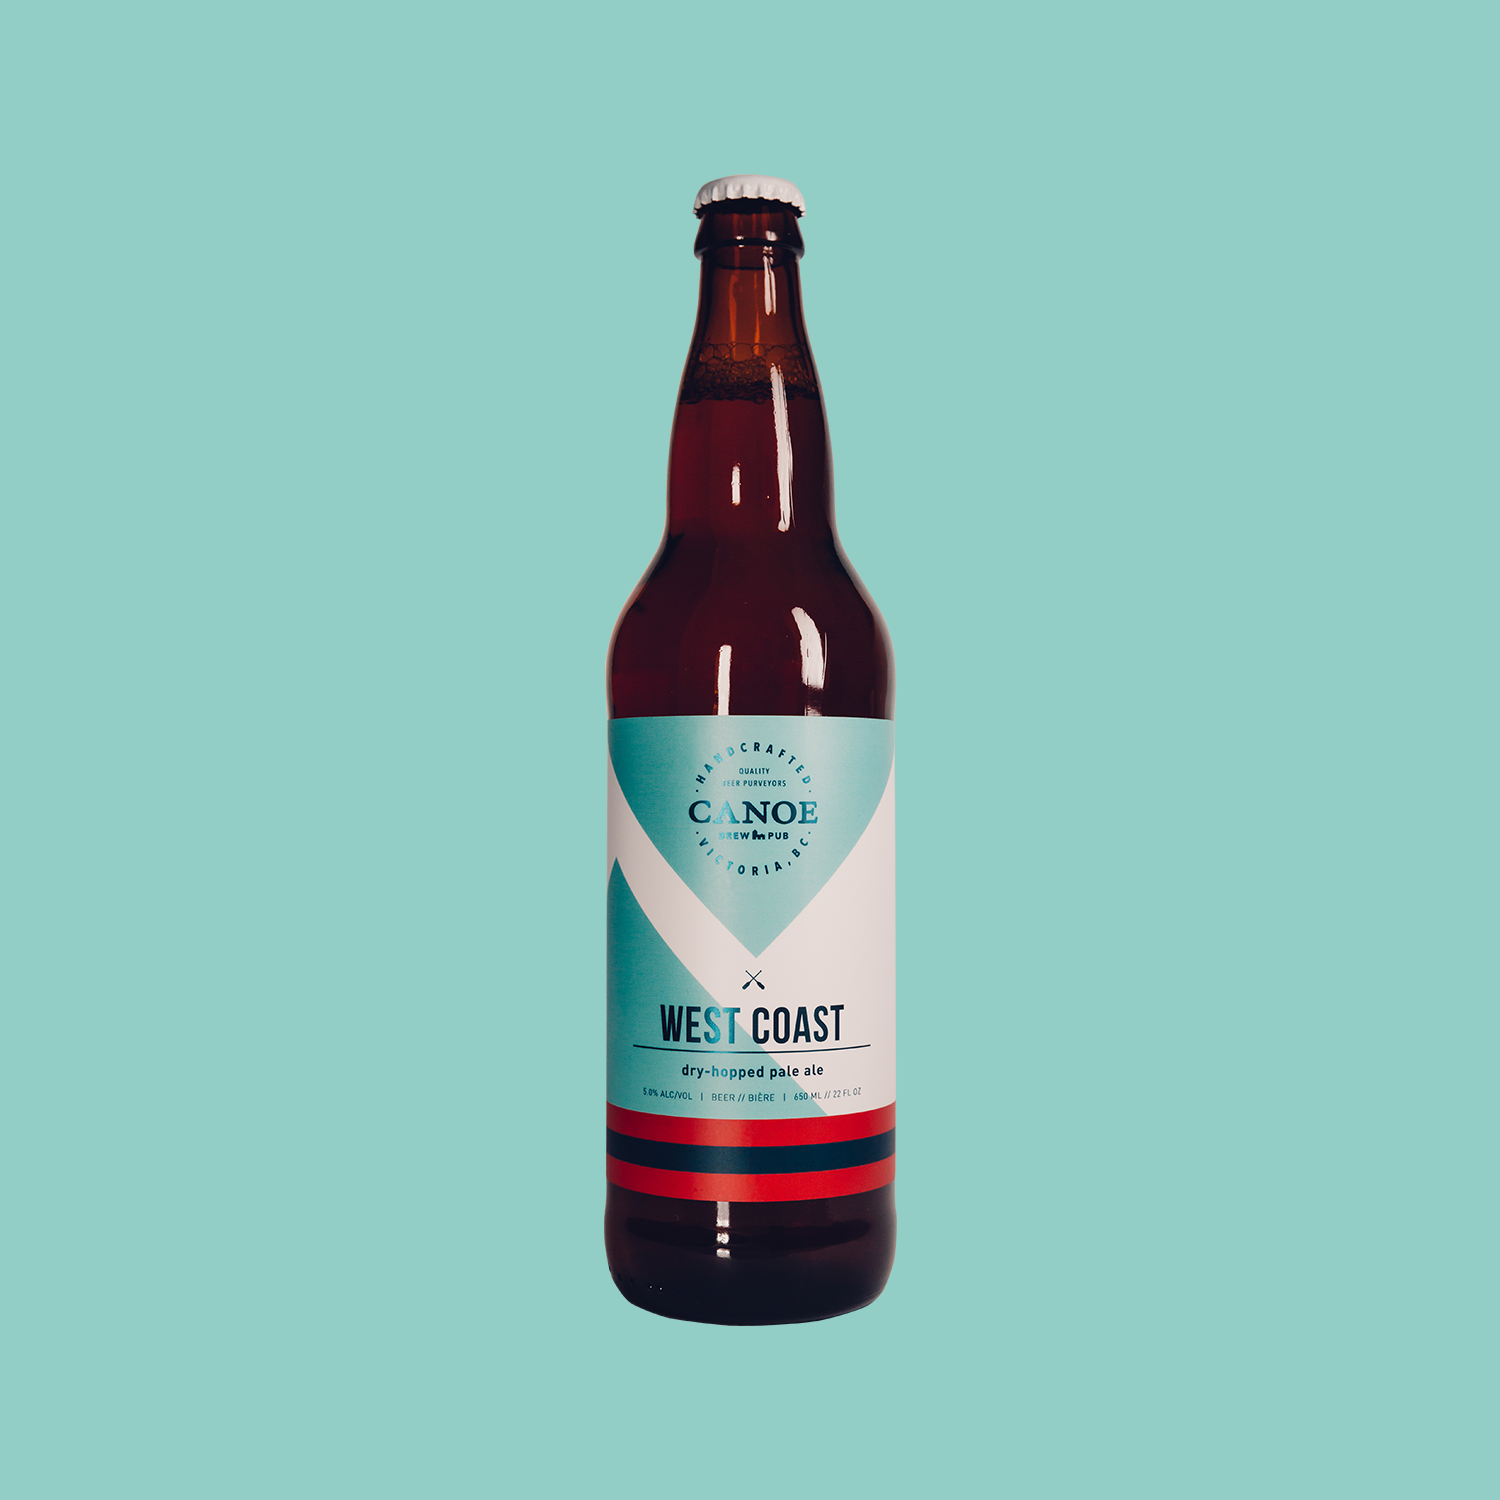 West Coast - A dry-hopped pale ale.An expression of Pacific Northwest hop character, balanced by robust Canadian pale malt. Full flavoured with a mild, refreshing bitterness. Aromatic & mellow.ALC: 5%IBU: 22 (low bitterness/hoppiness)Malt: Low